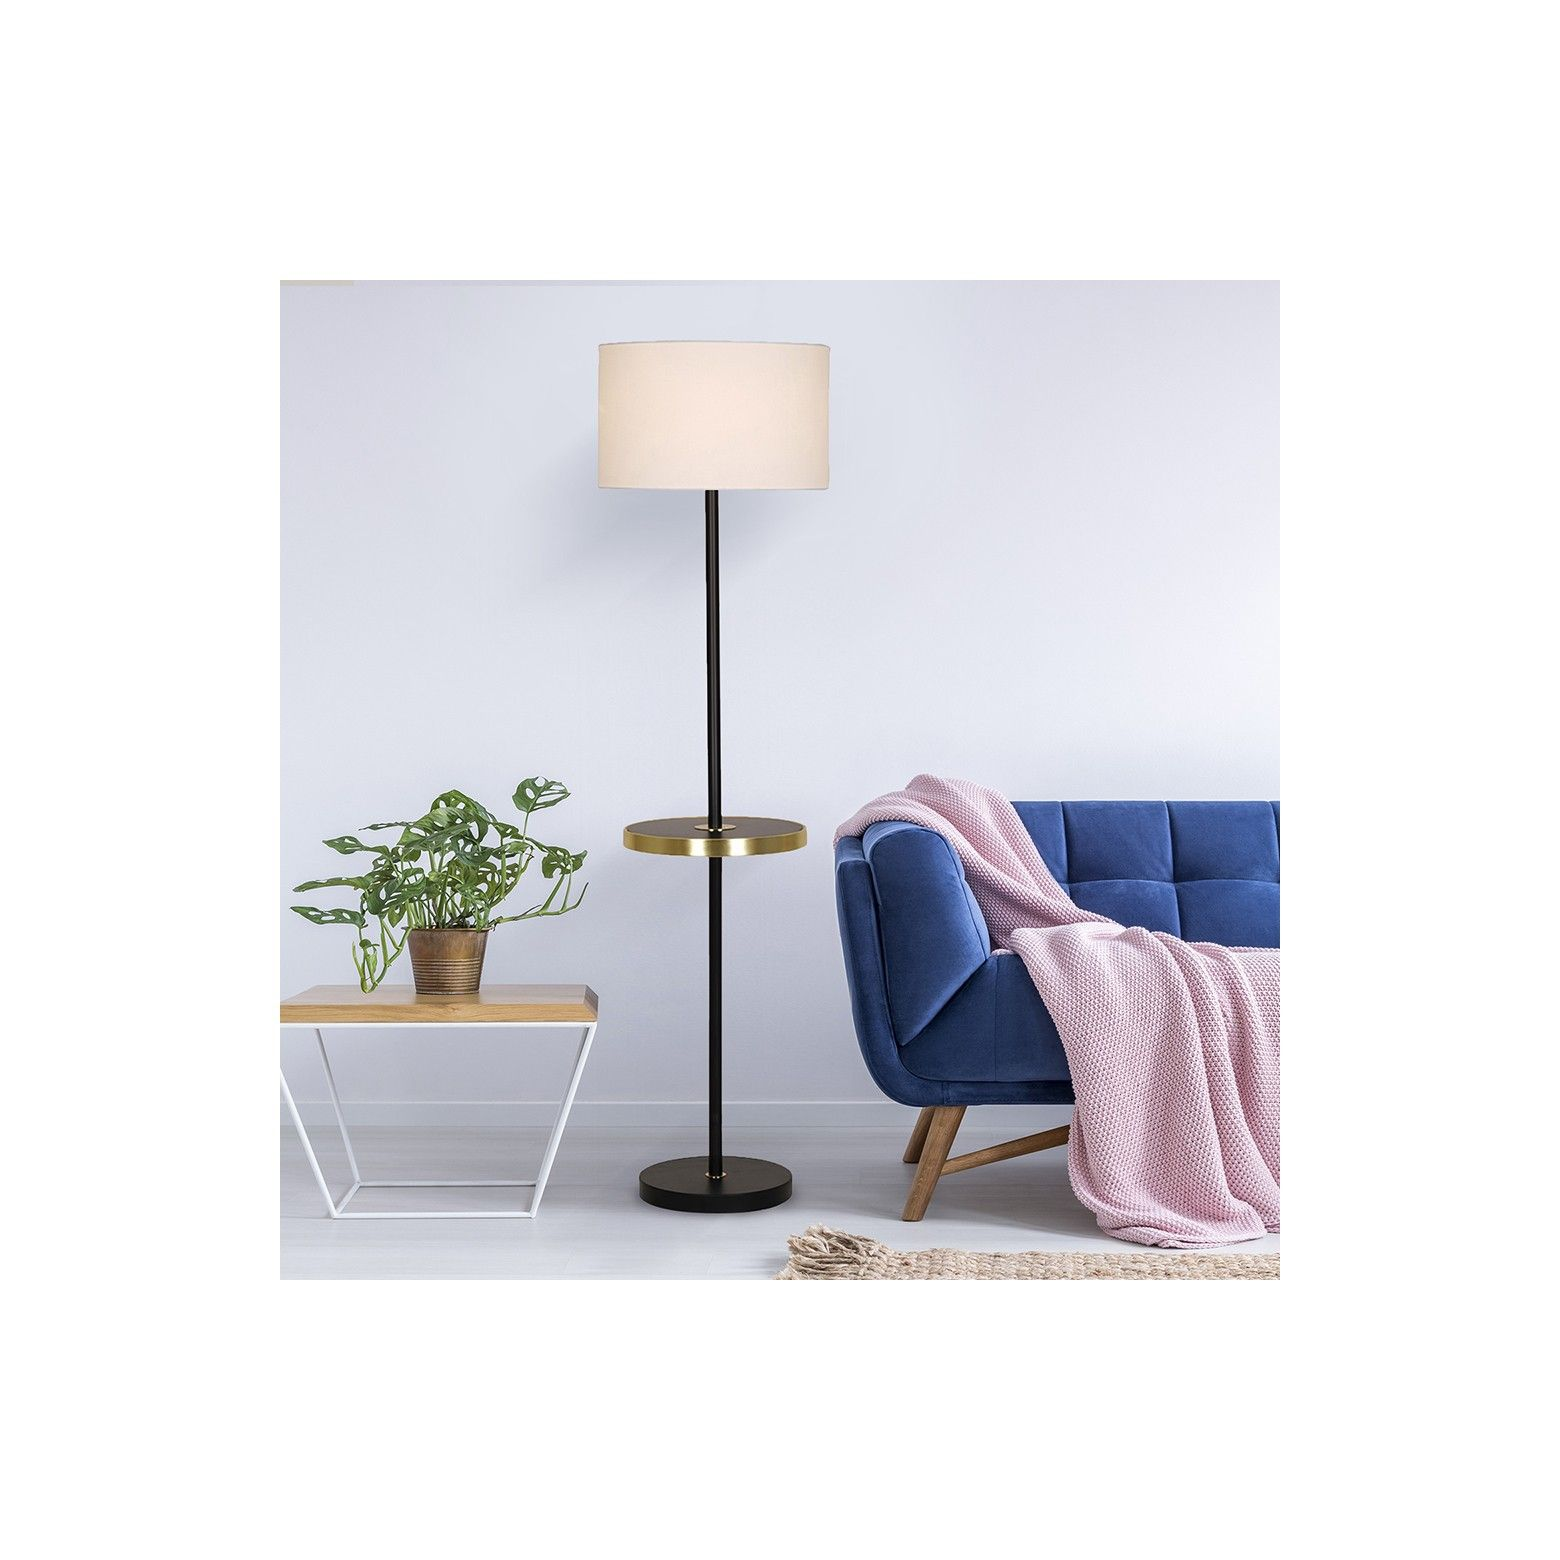 This Shelf Stick LED Floor Lamp from Threshold™ has a